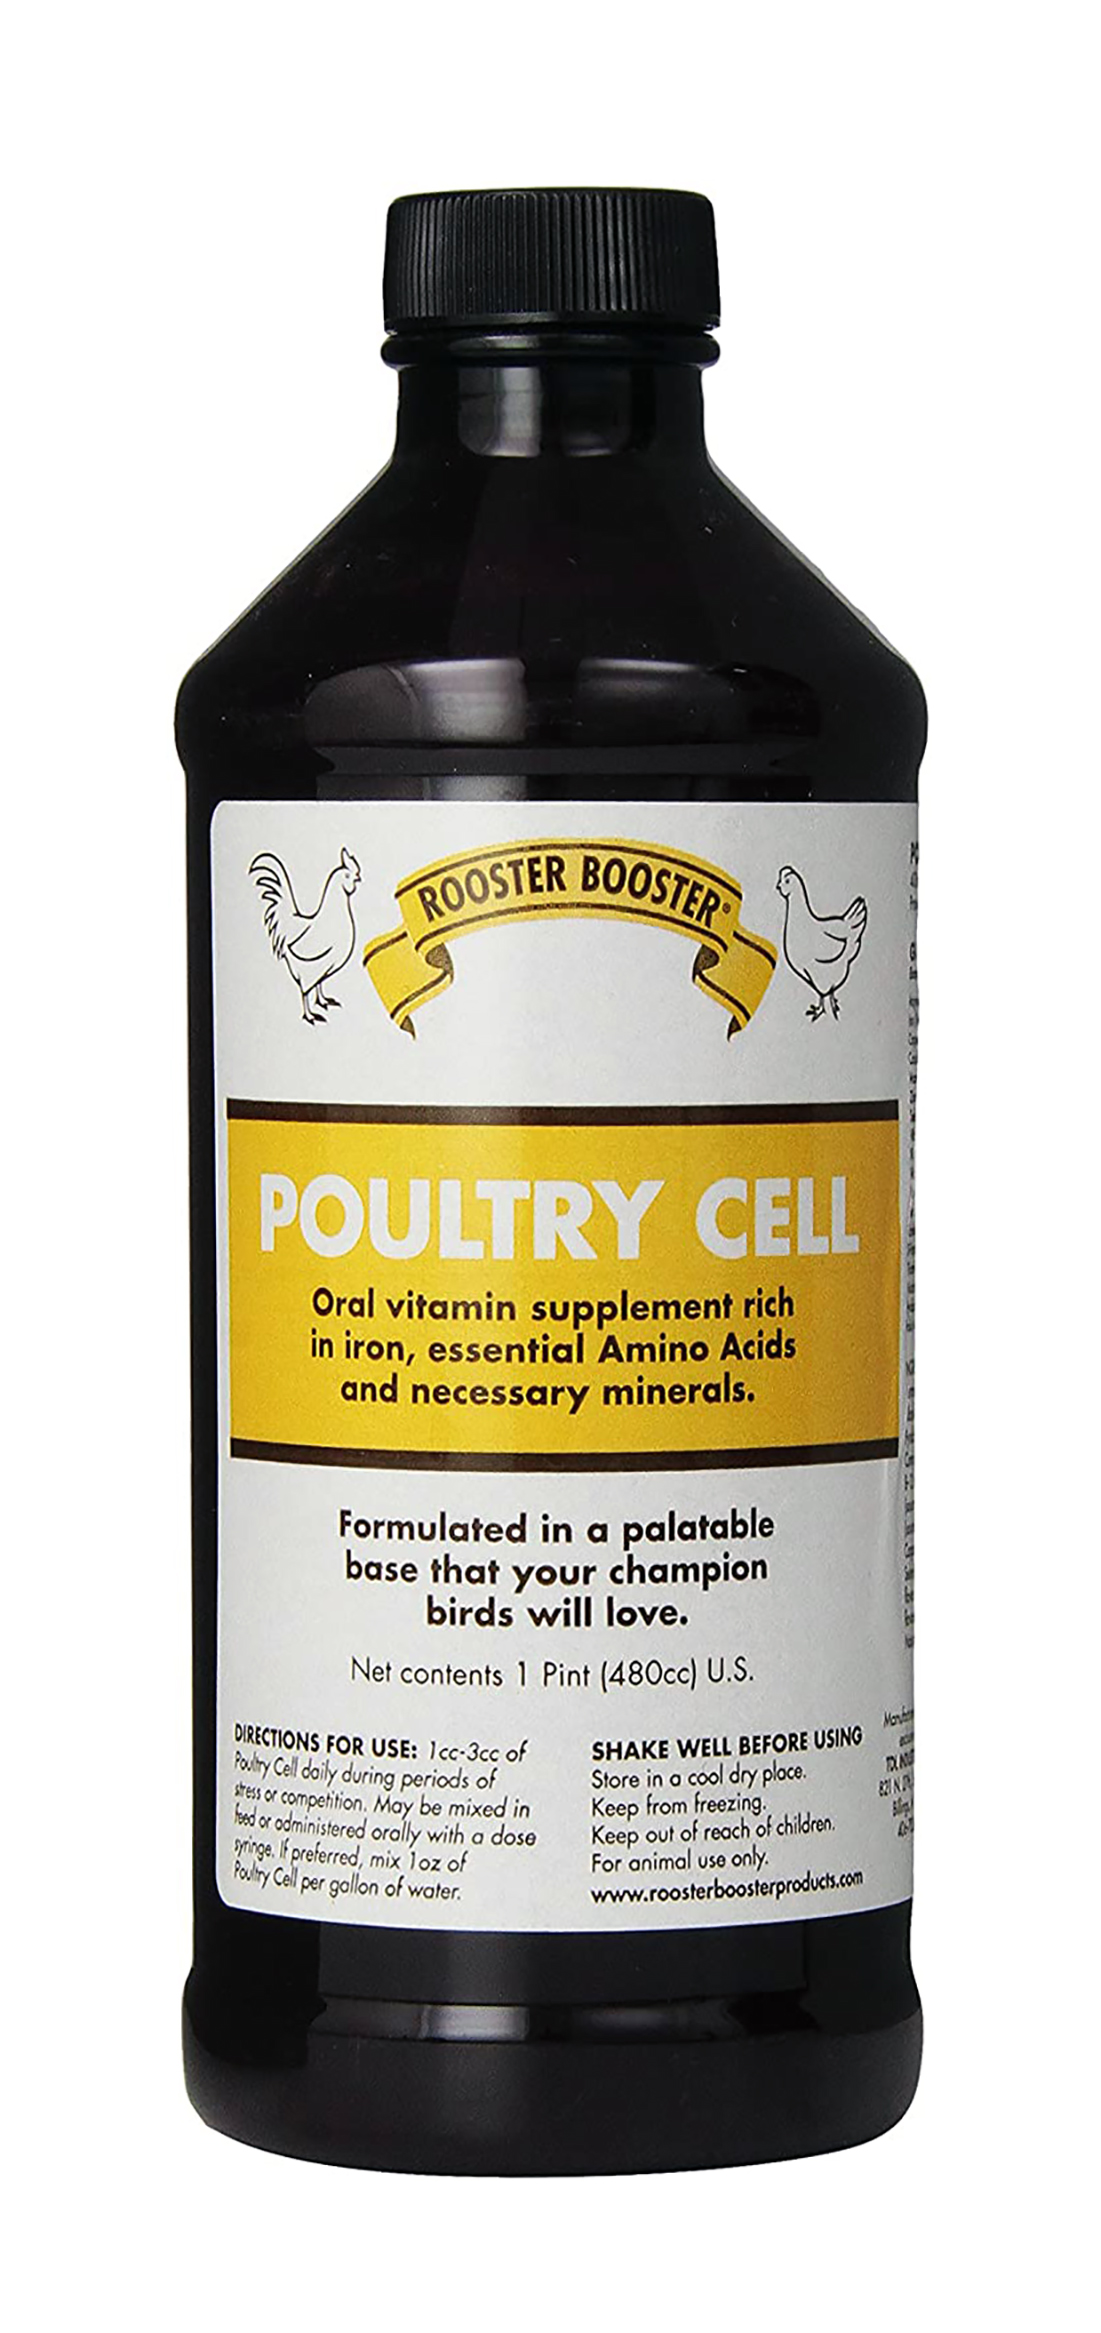 Poultry Cell review